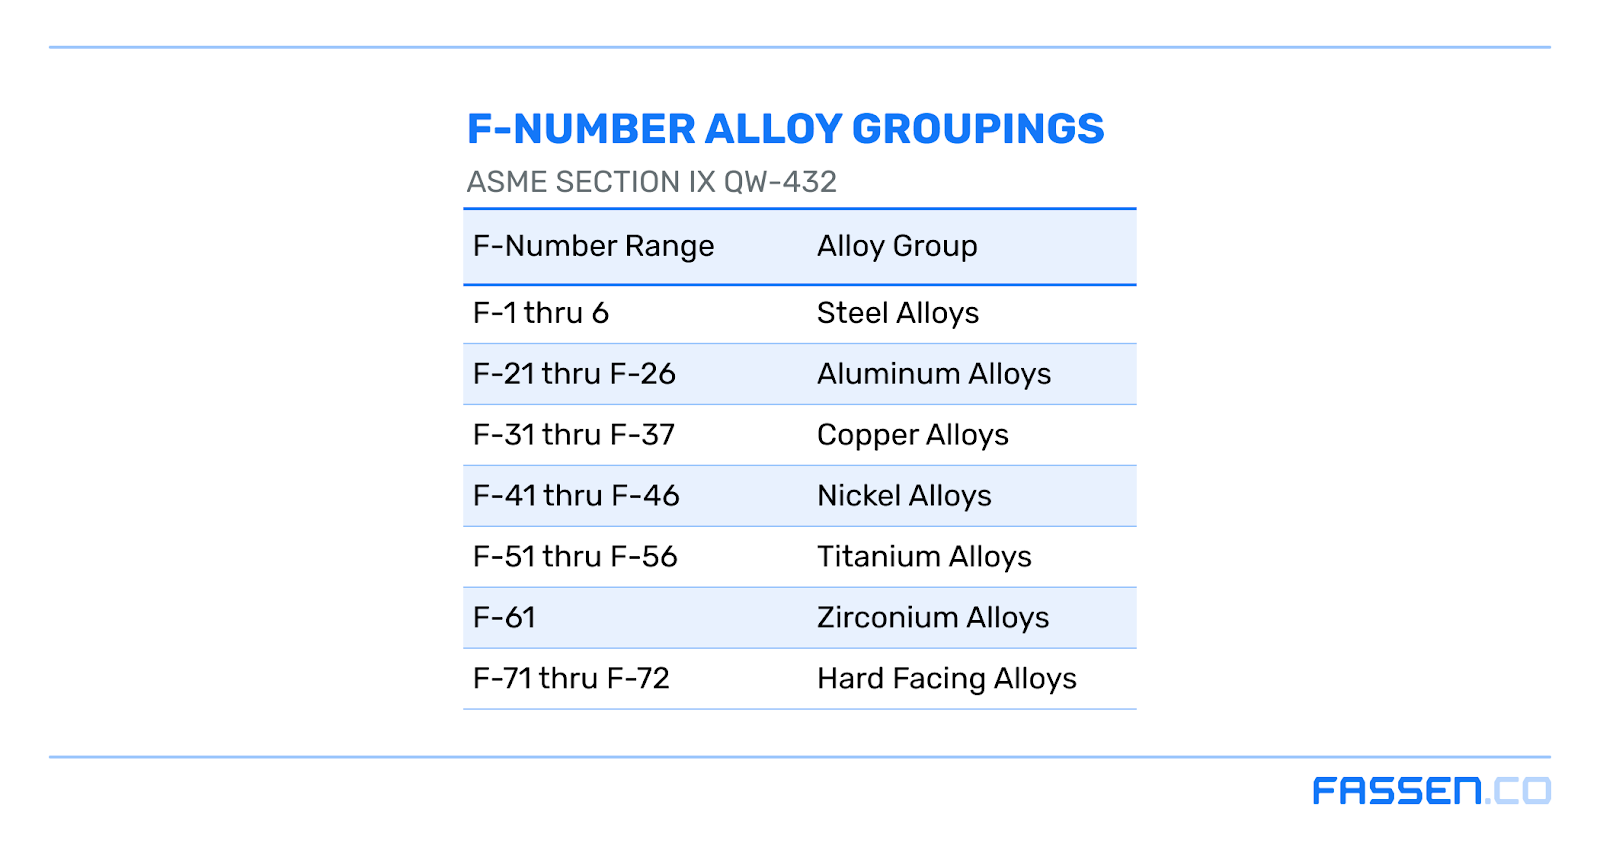 ASME F-Number Alloy Grouping